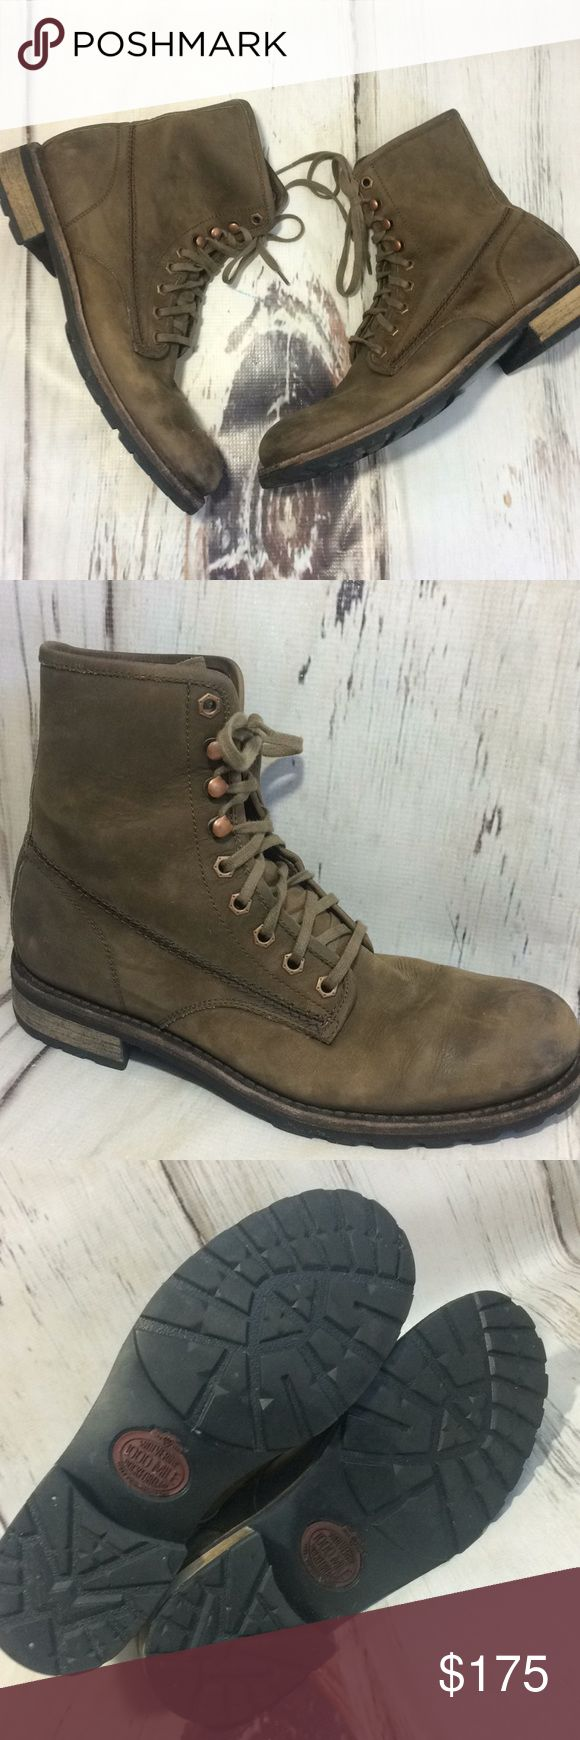 Wolverine 1000 mile men's brown leather boots 9D Wolverine 1000 Mile Rockport, MI Stock No. W00920. Size 9D. Minor scuffing and signs of wear. Welt Construction. Men's brown leather lace up boots. Wolverine Shoes Boots